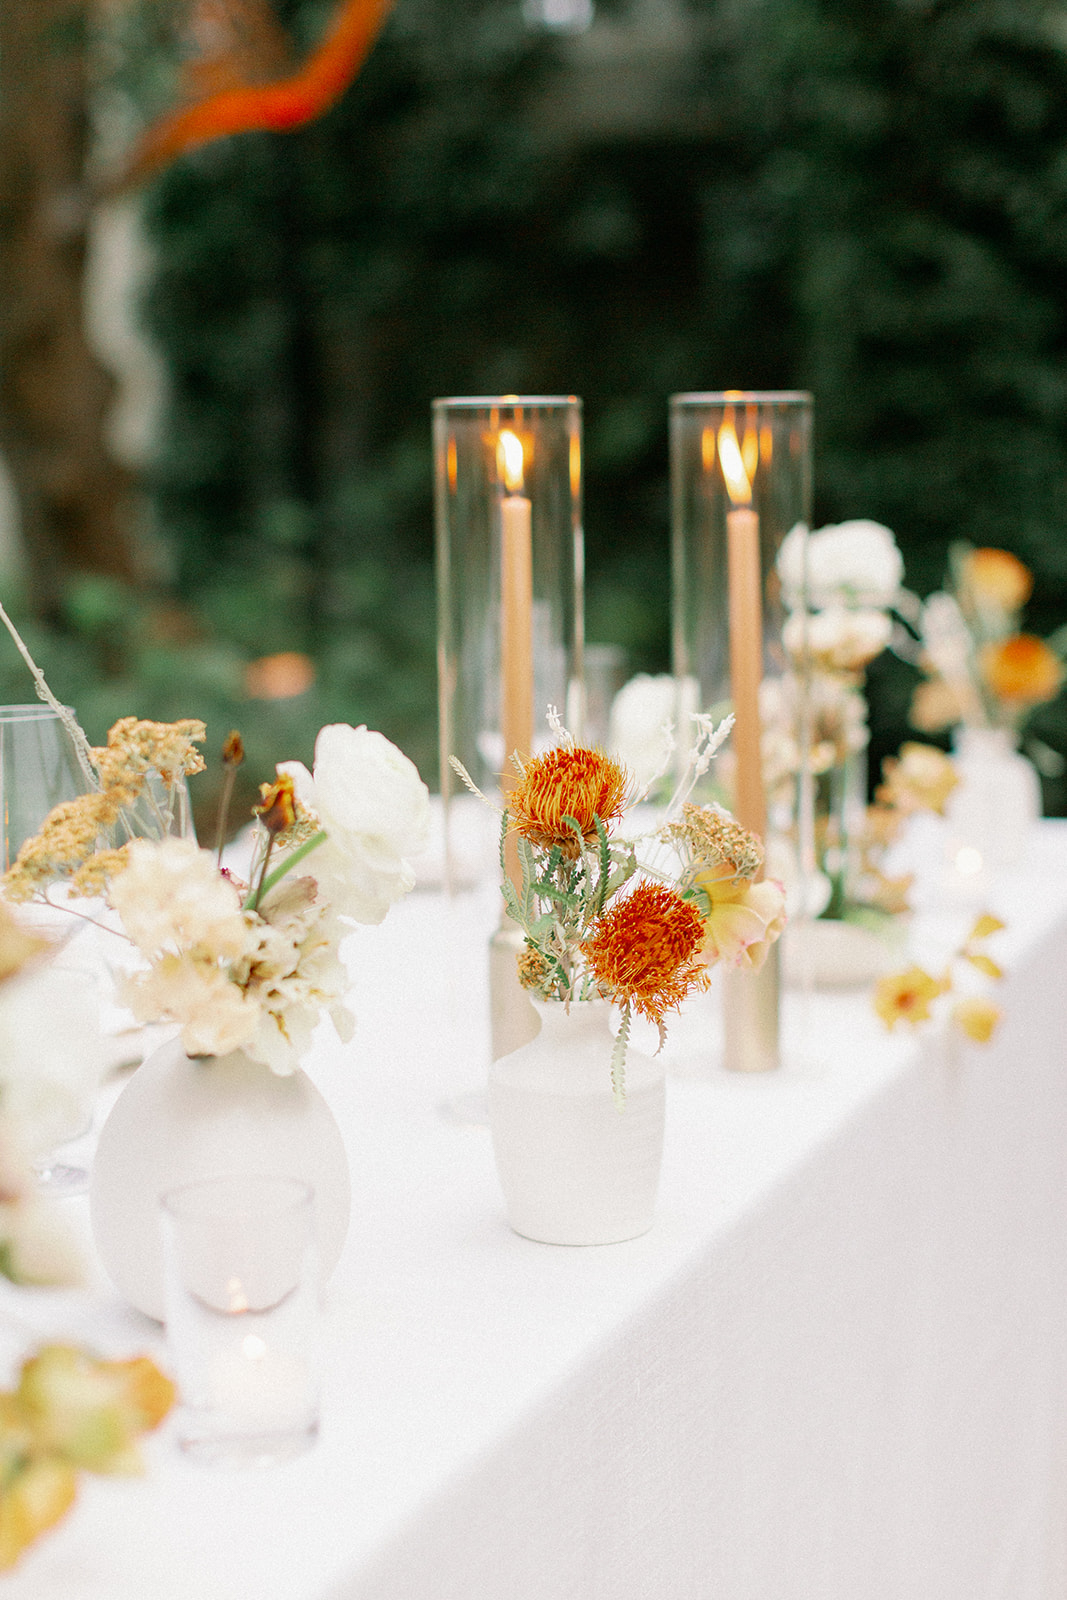 minimalist floral and candle table details